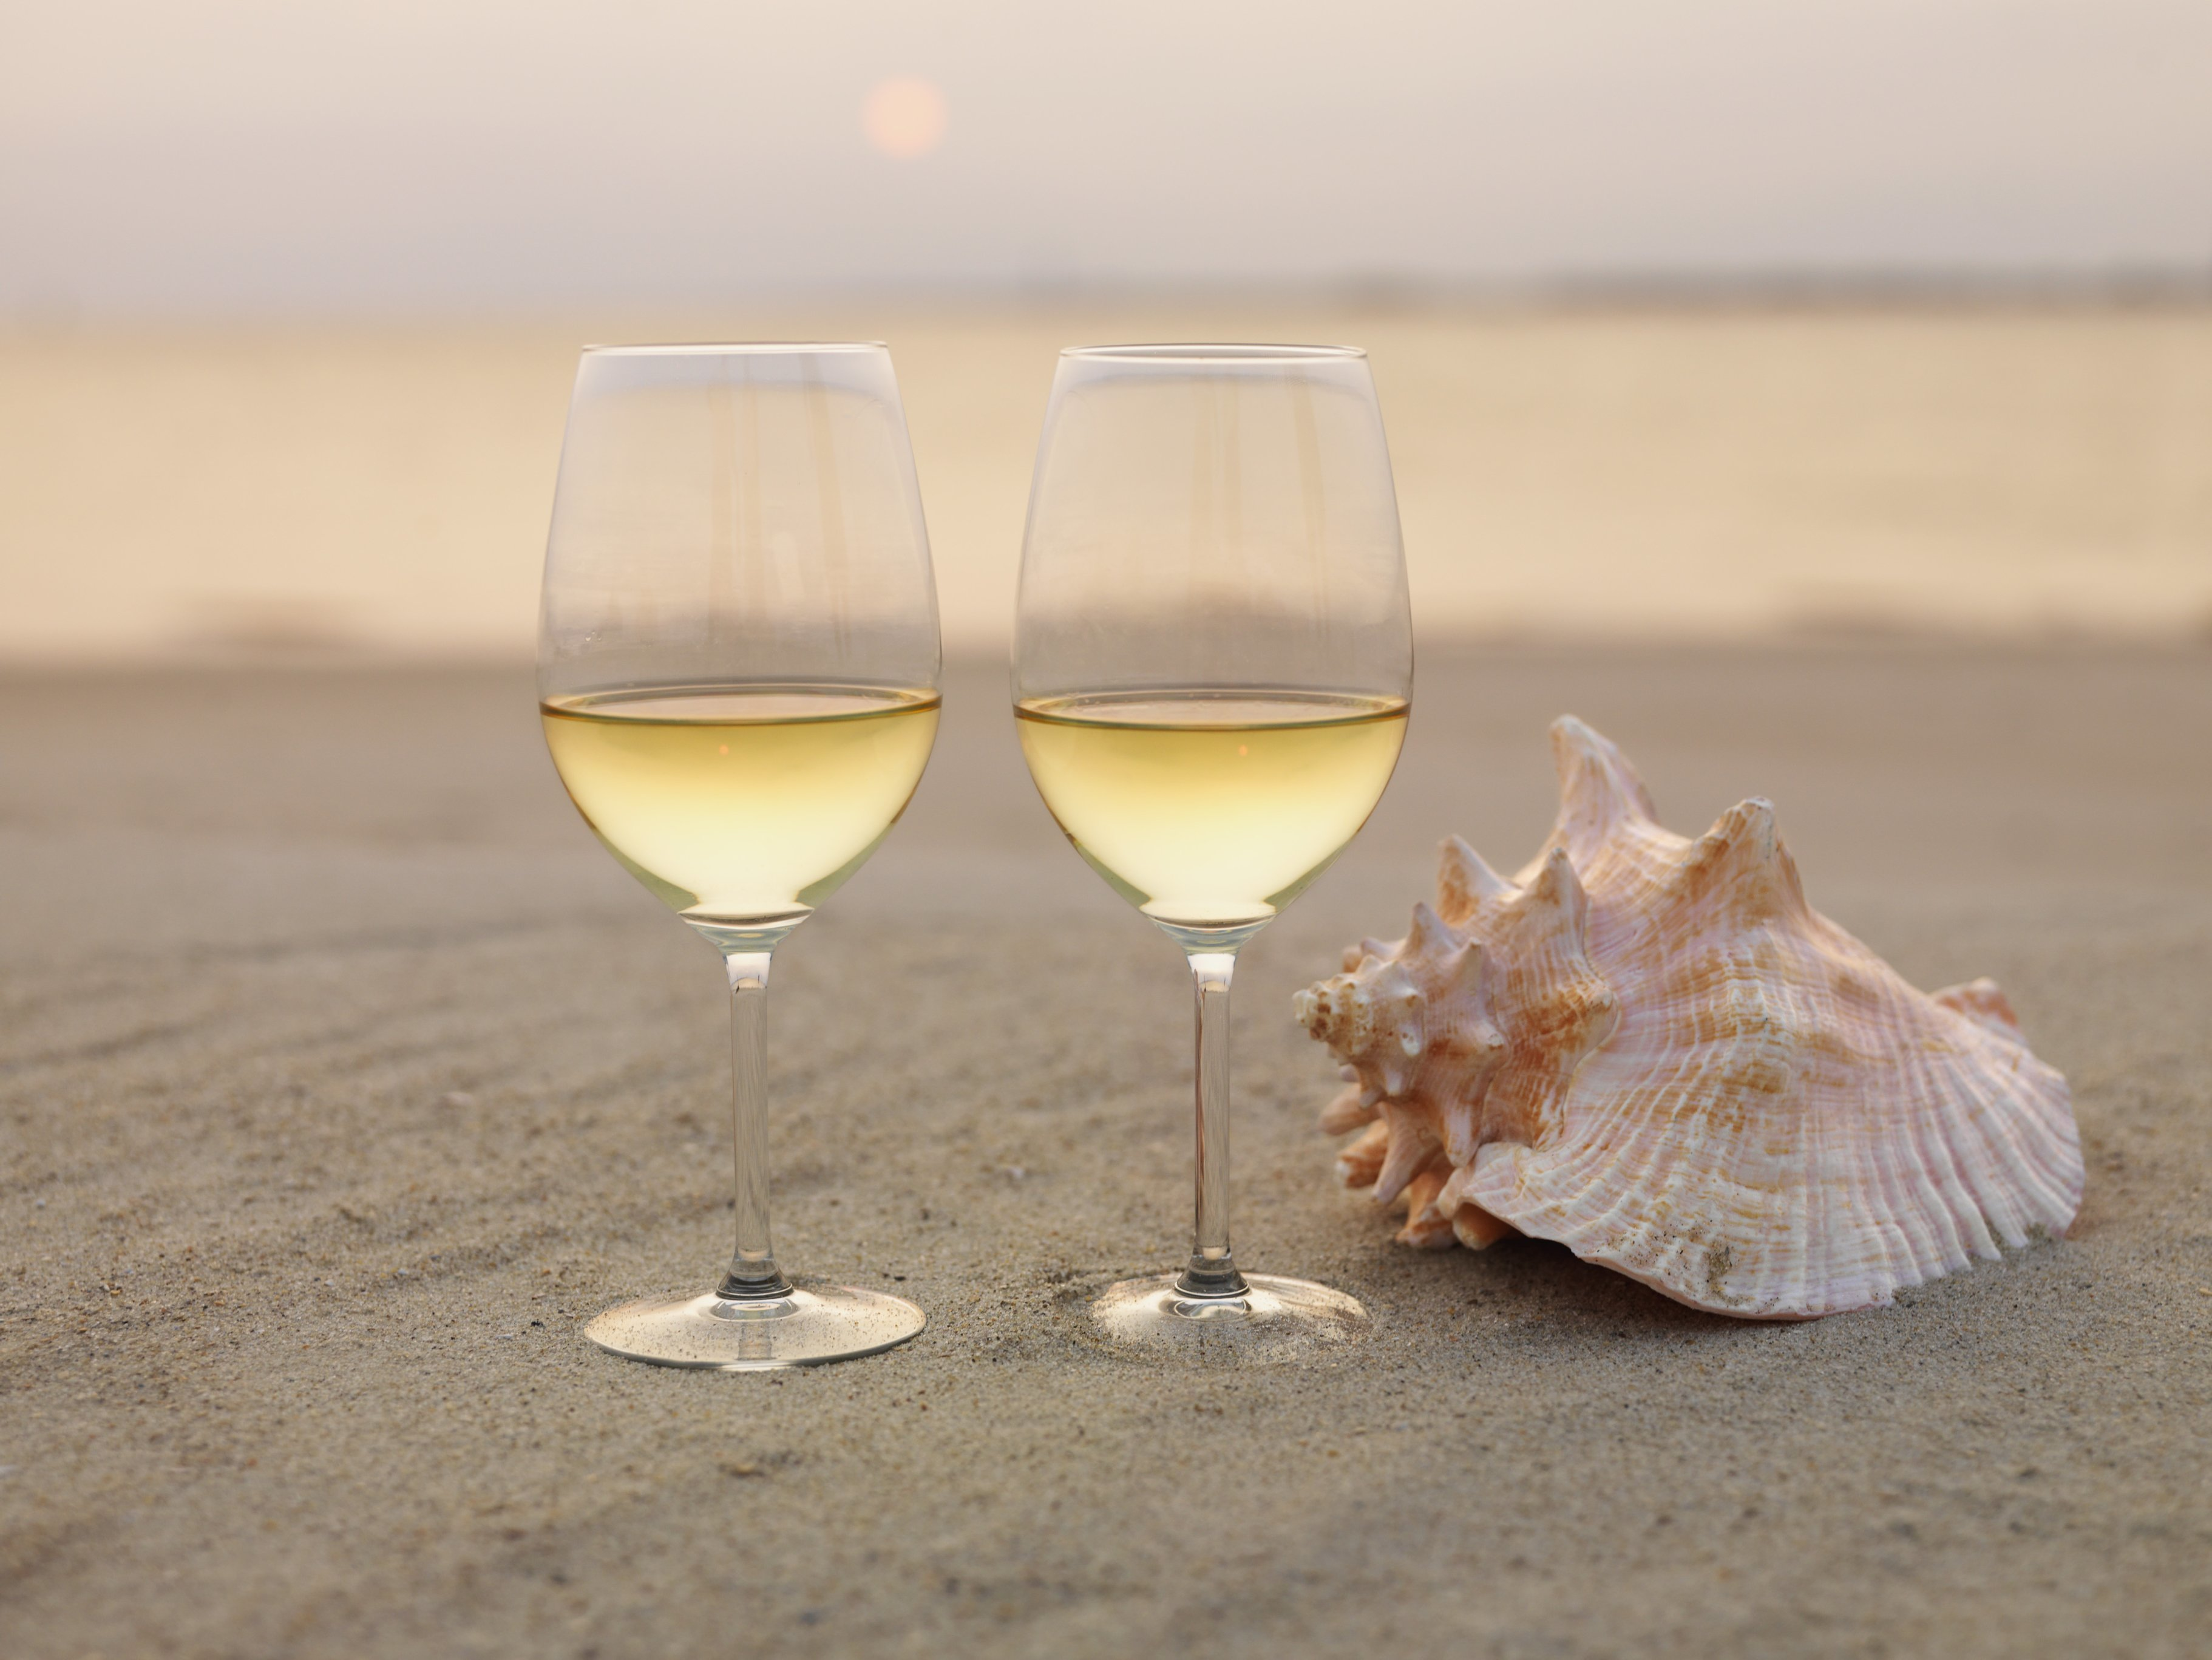 Champagne glasses and shell on beach